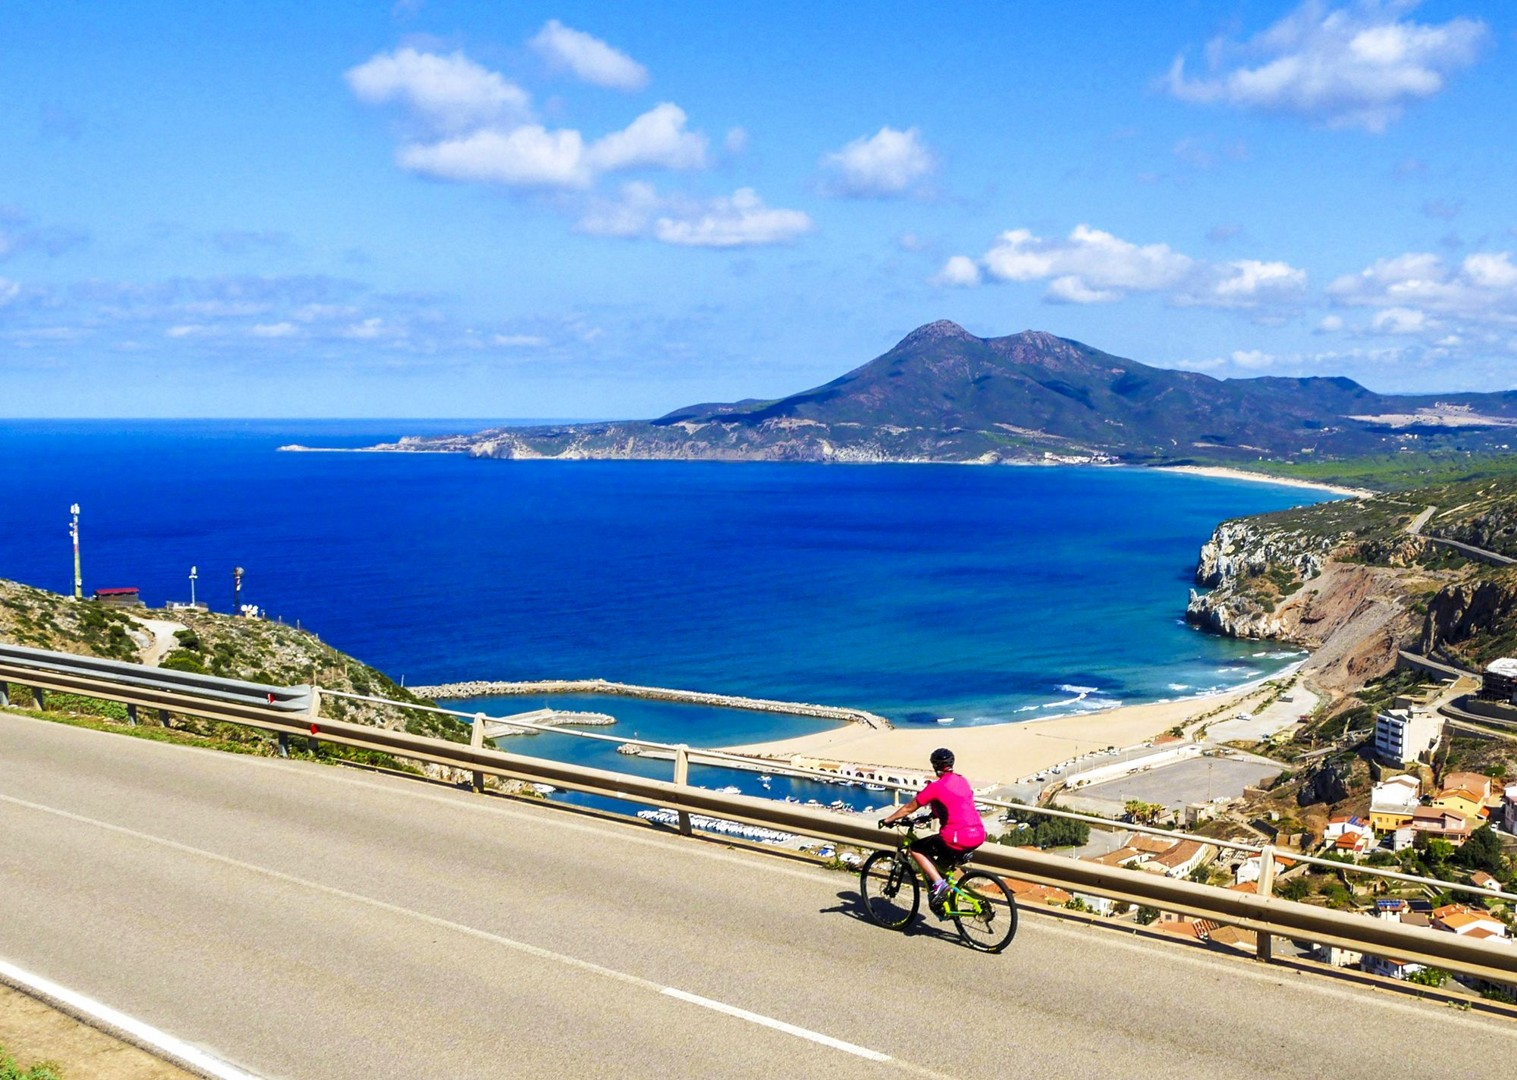 cycling-self-guided-trip-in-sardinia-italy.jpg - Italy - Sardinia - Island Flavours - Self-Guided Leisure Cycling Holiday - Italia Leisure and Family Cycling